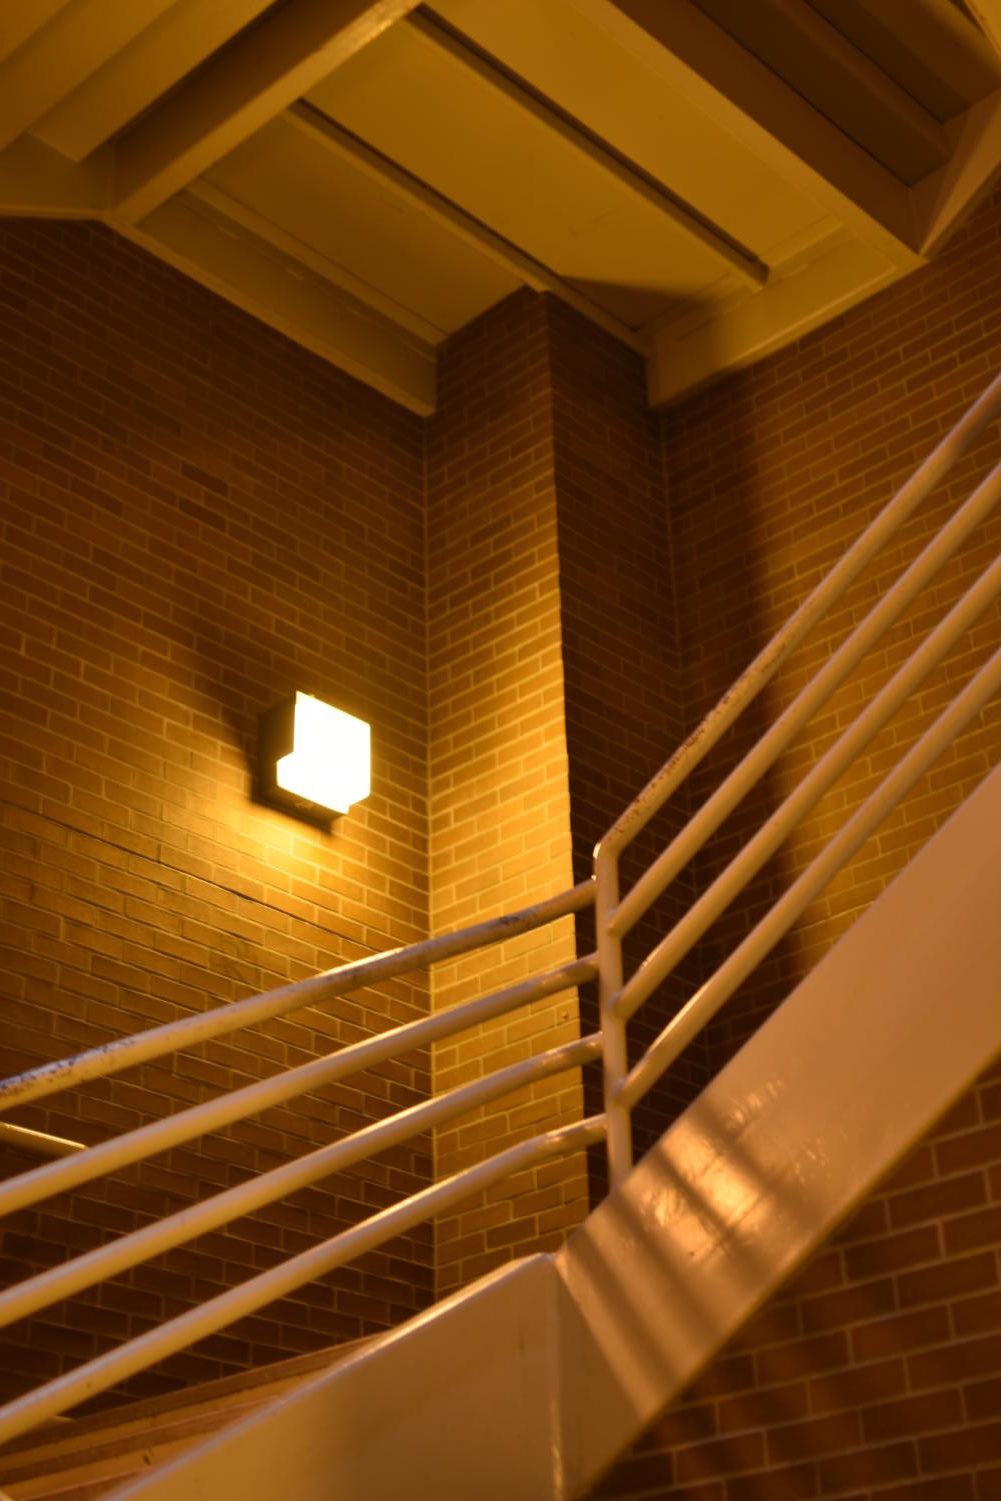 Through a Santa Rosa Junior College student reports she was sexually assaulted in this Maggini Hall stairwell on Oct. 27, police did not release a Nixle alert of the incident until two weeks later.